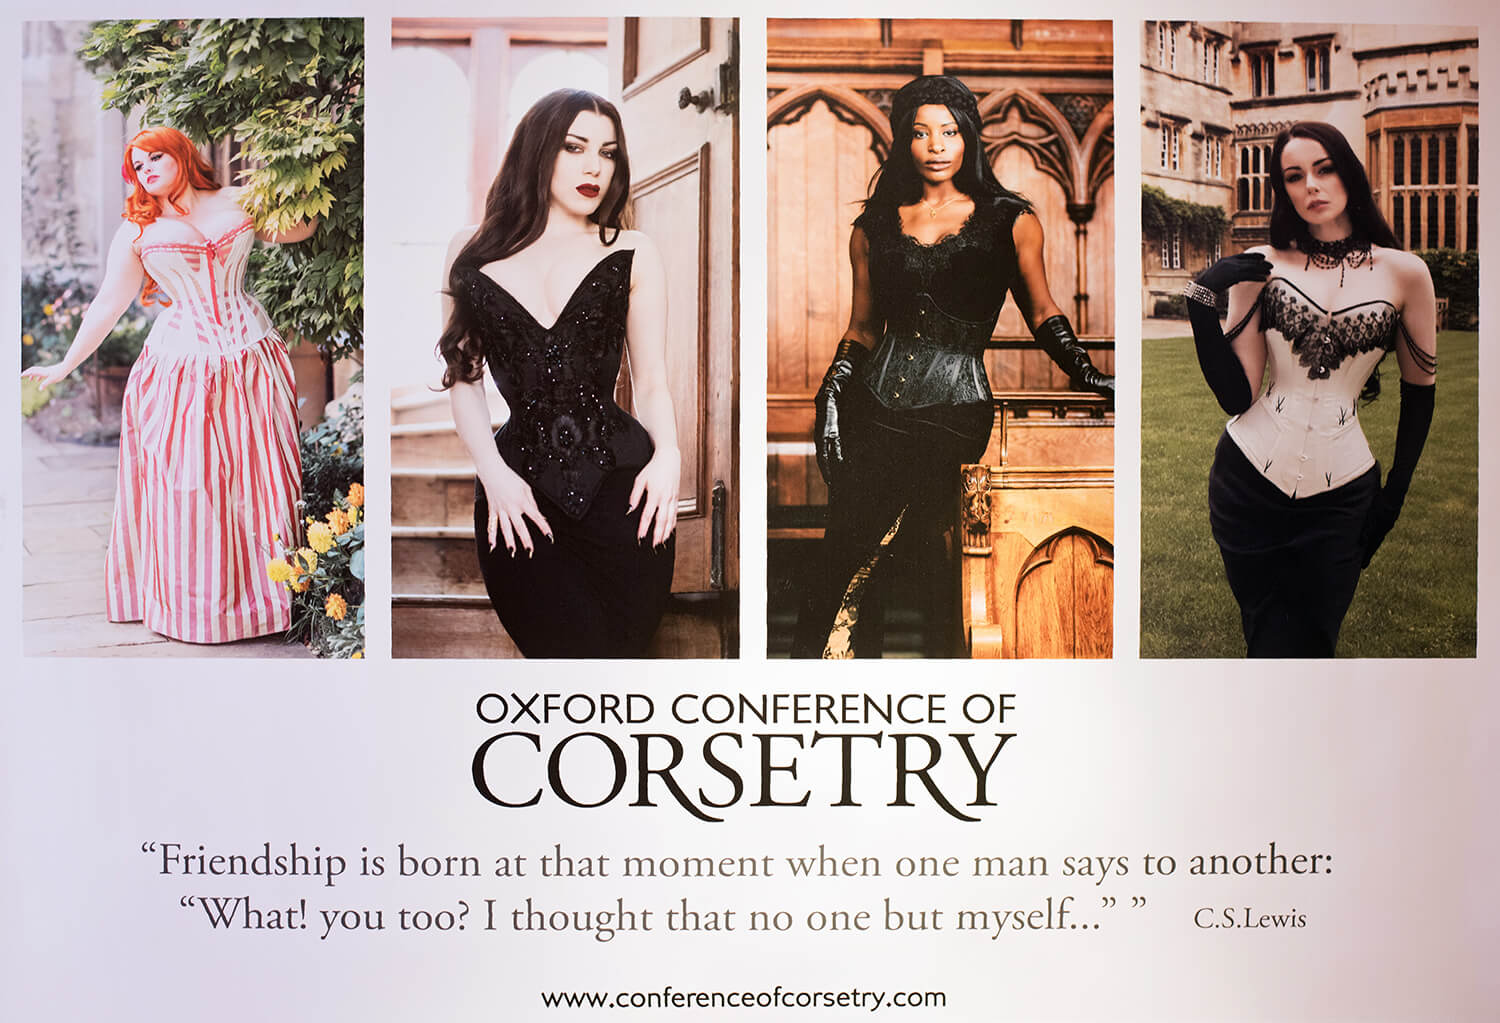 Oxford Conference of Corsetry